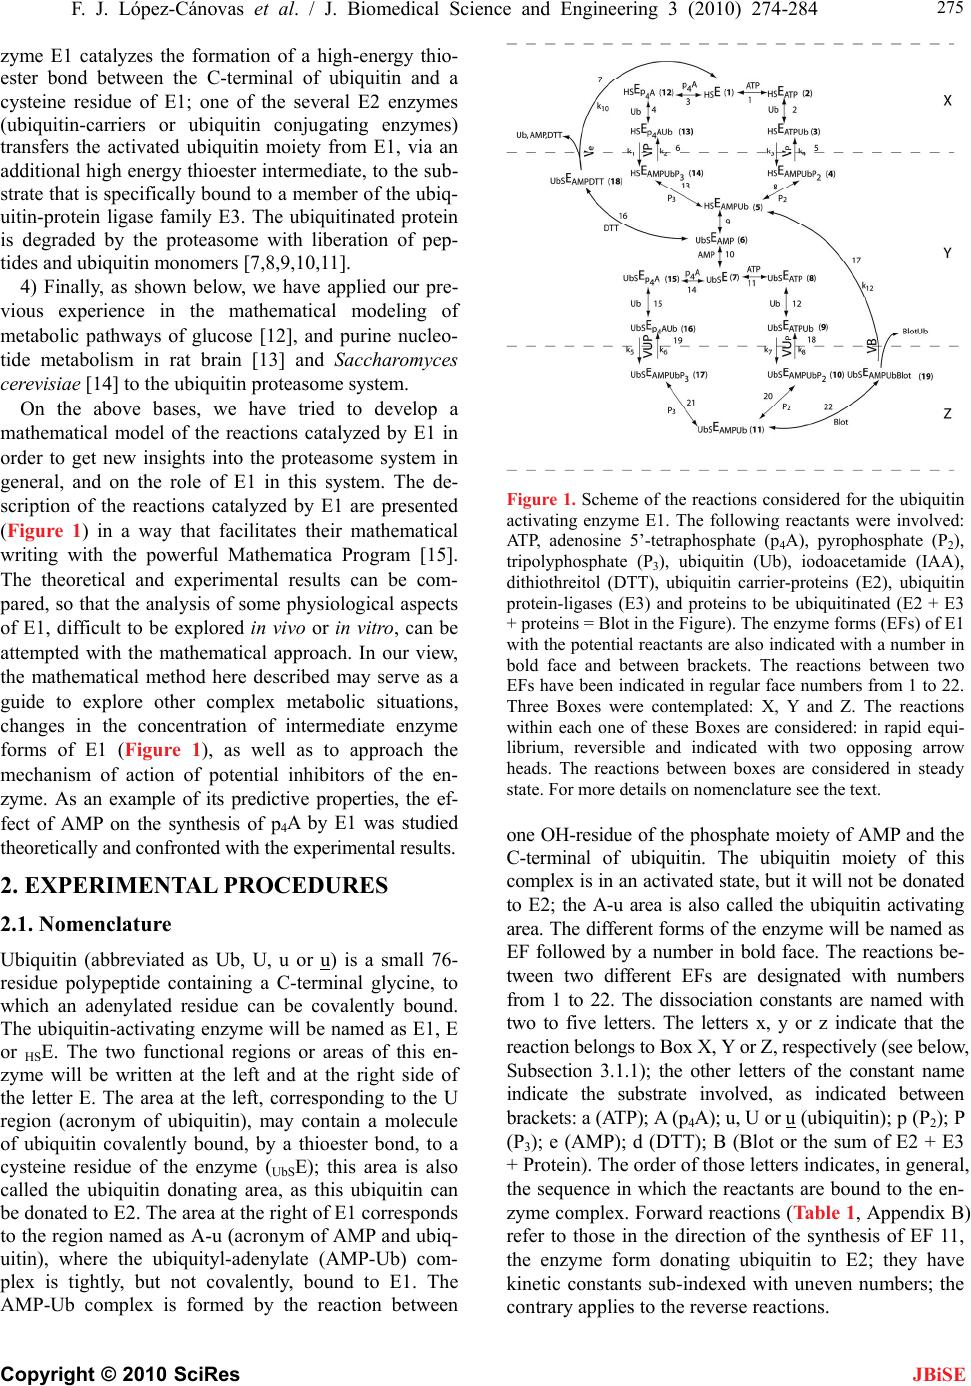 thesis on ubiquitin Fluorescent reporters for the ubiquitin-proteasome system (2005) essays biochem 41(1) possible role of the ubiquitin-proteasome system in neurodegenerative.